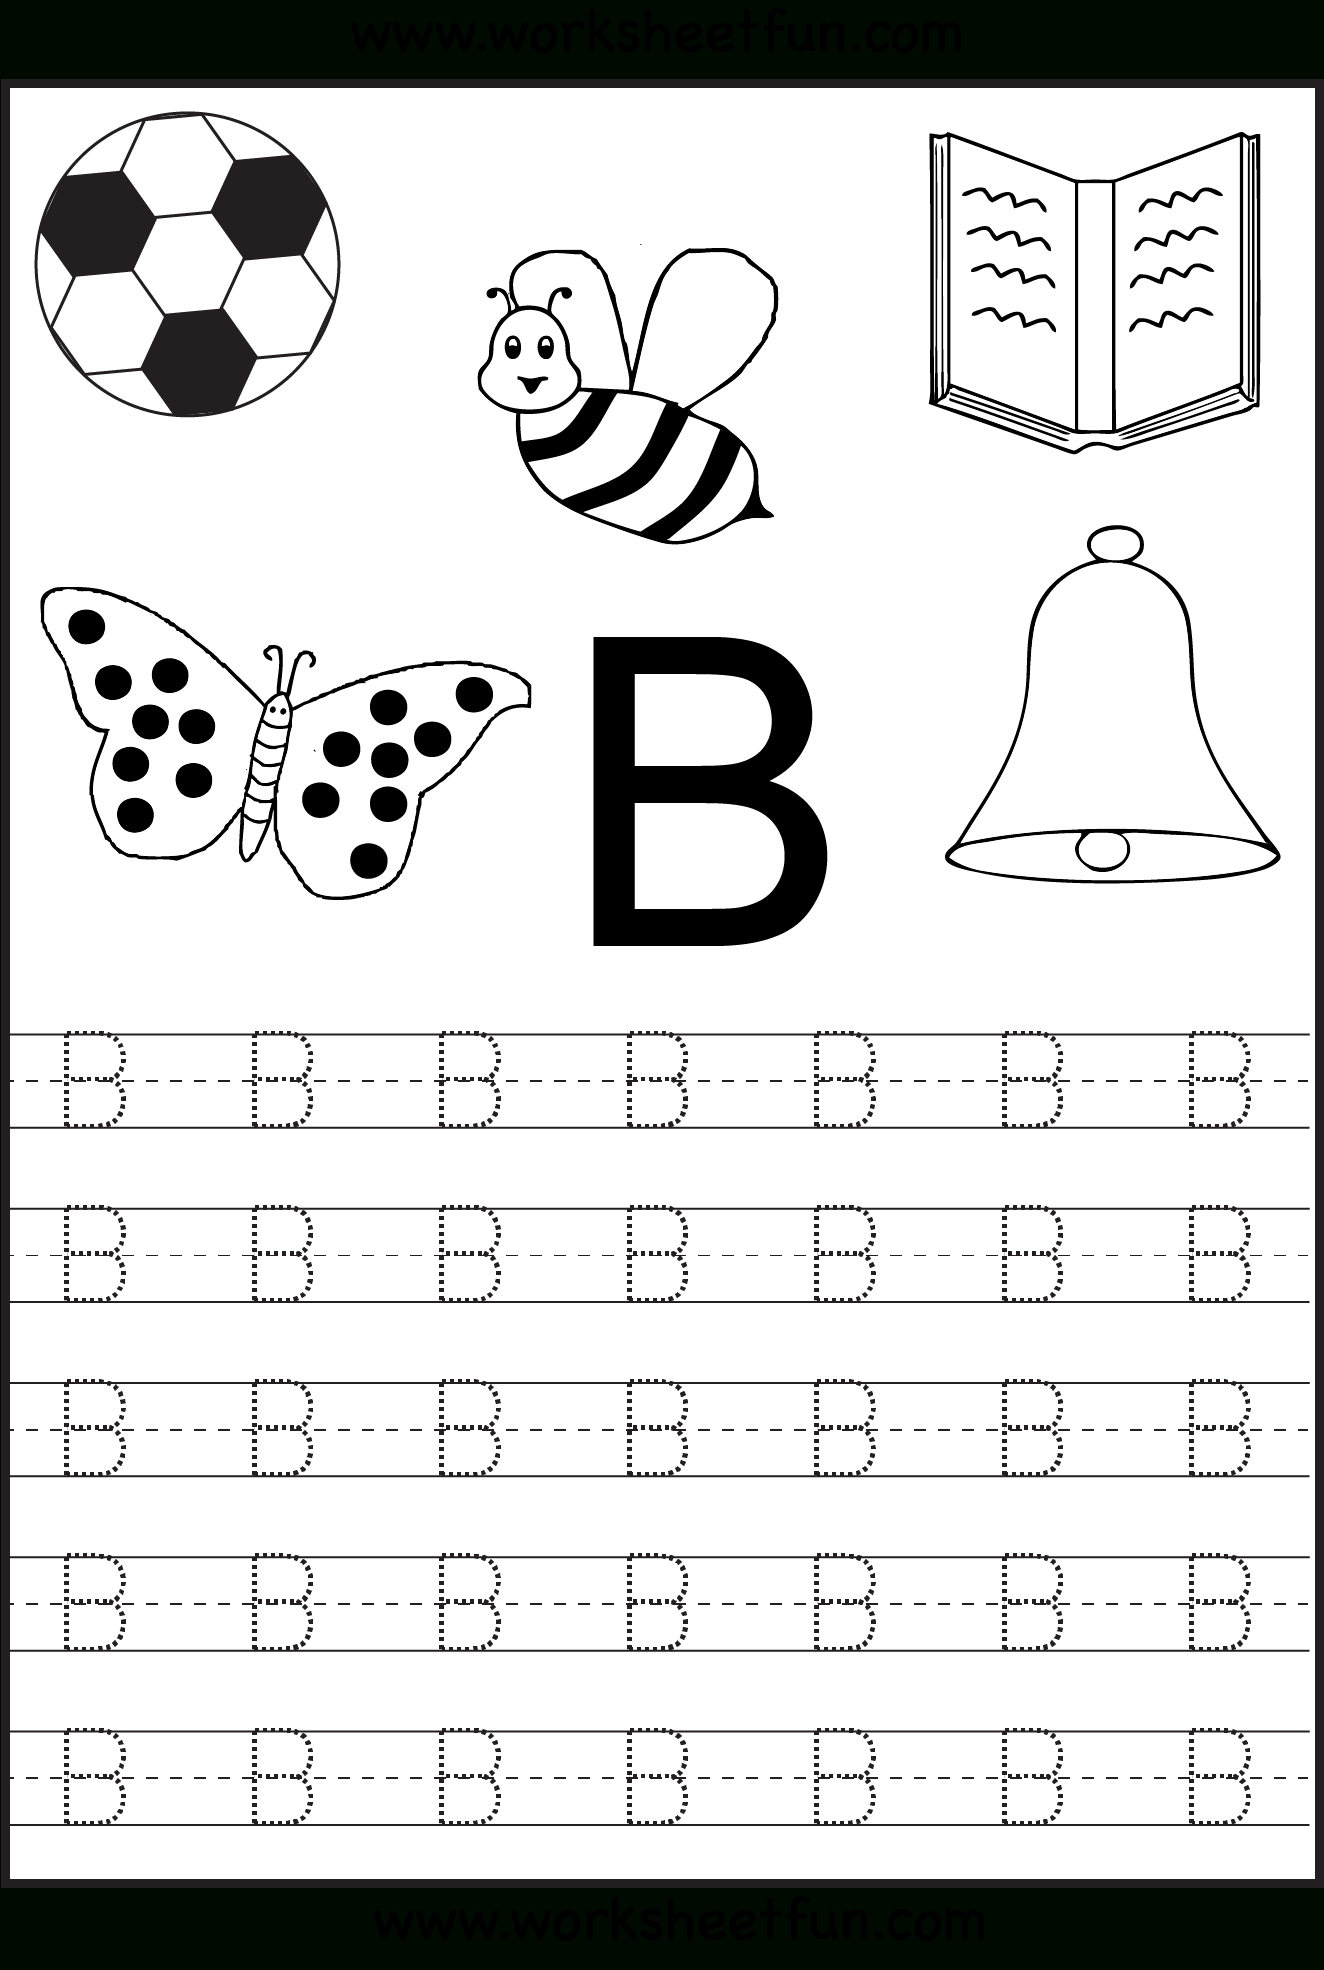 Free Printable Letter Tracing Worksheets For Kindergarten – 26 | Printable Worksheets For Preschoolers The Alphabets